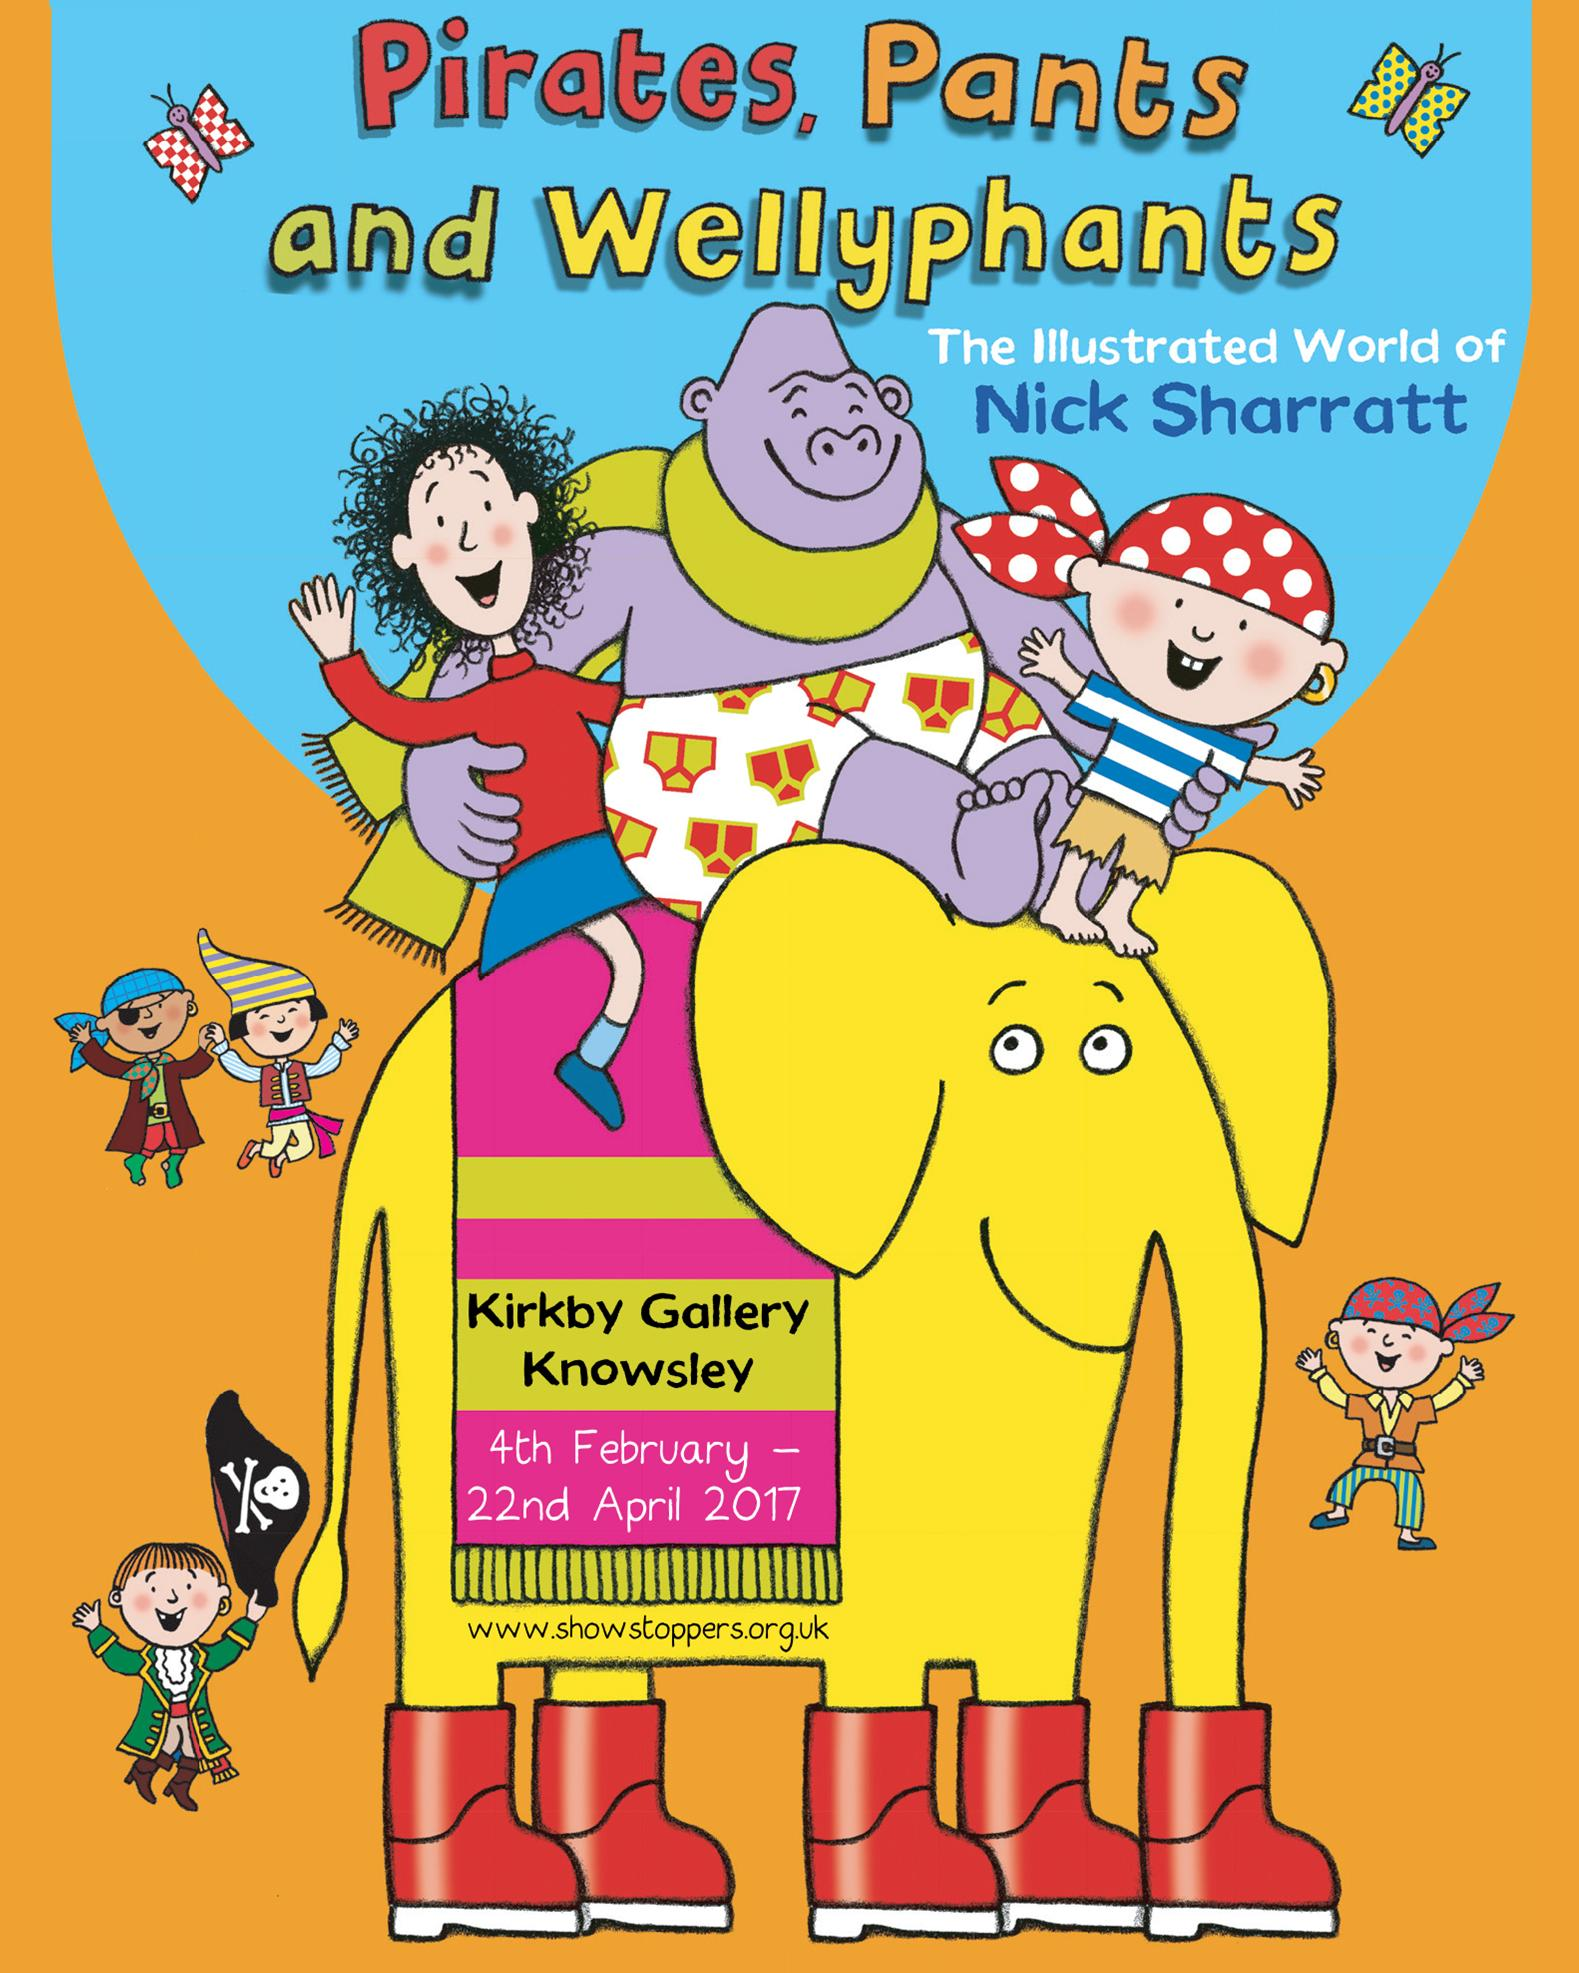 Pirates, Pants and Wellyphants